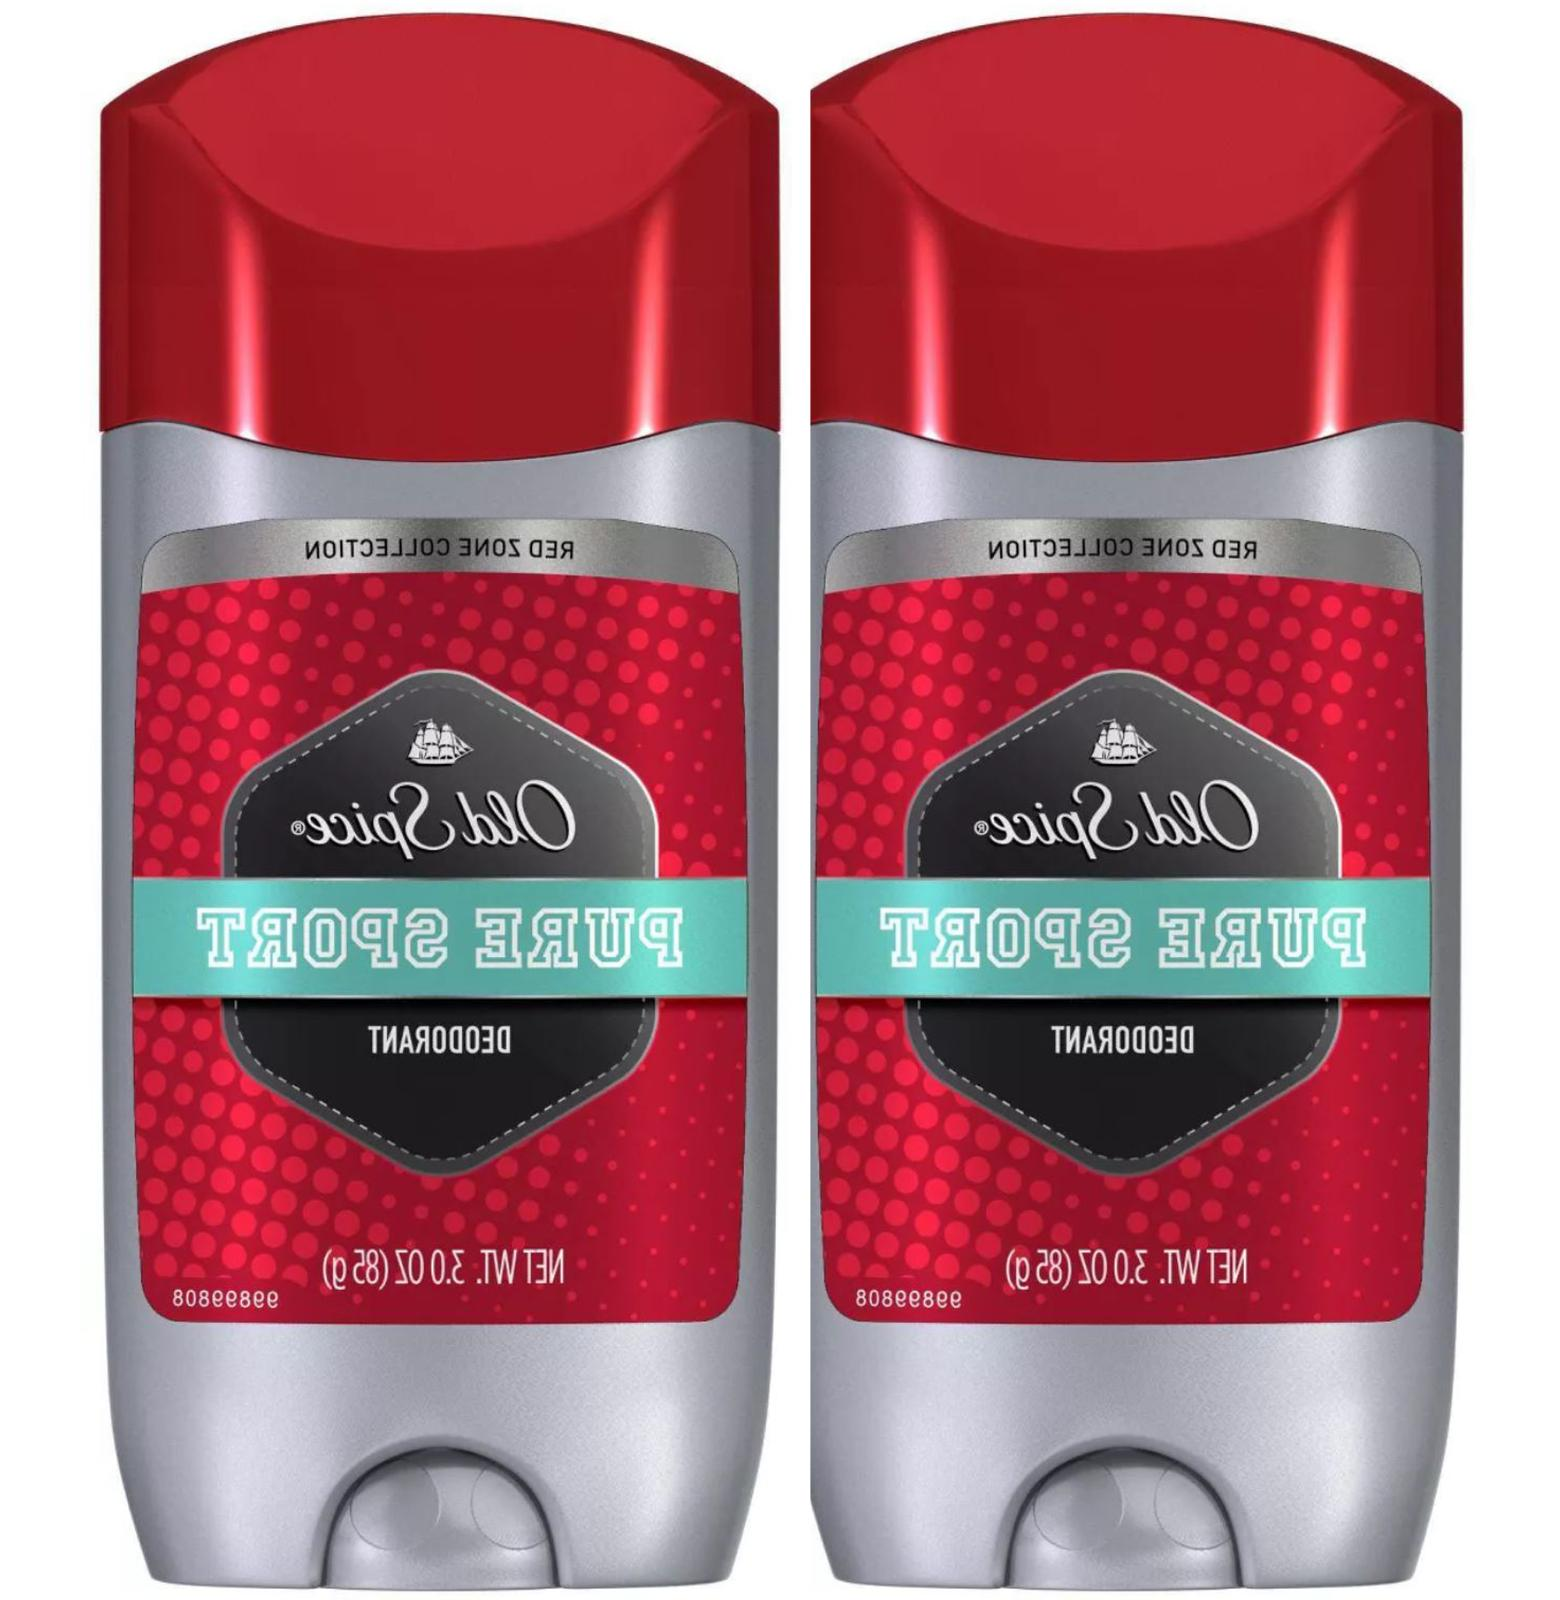 Old Spice Rz Deo Pure Spo Size 3z Old Spice Rz Deo Pure Spor